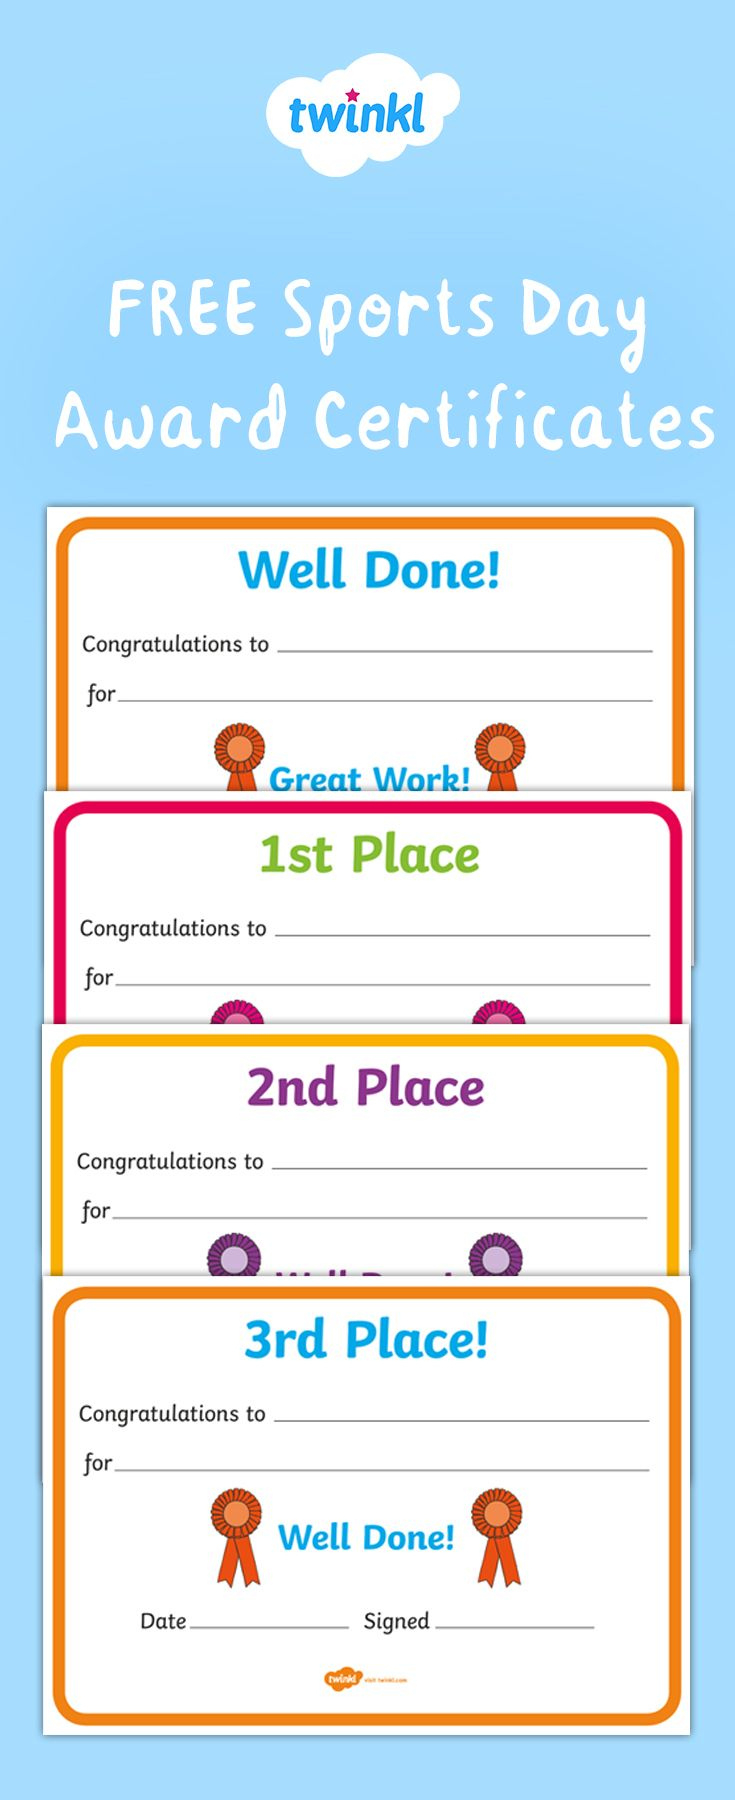 Free To Download Motivate And Inspire Your Children To regarding Amazing Sports Day Certificate Templates